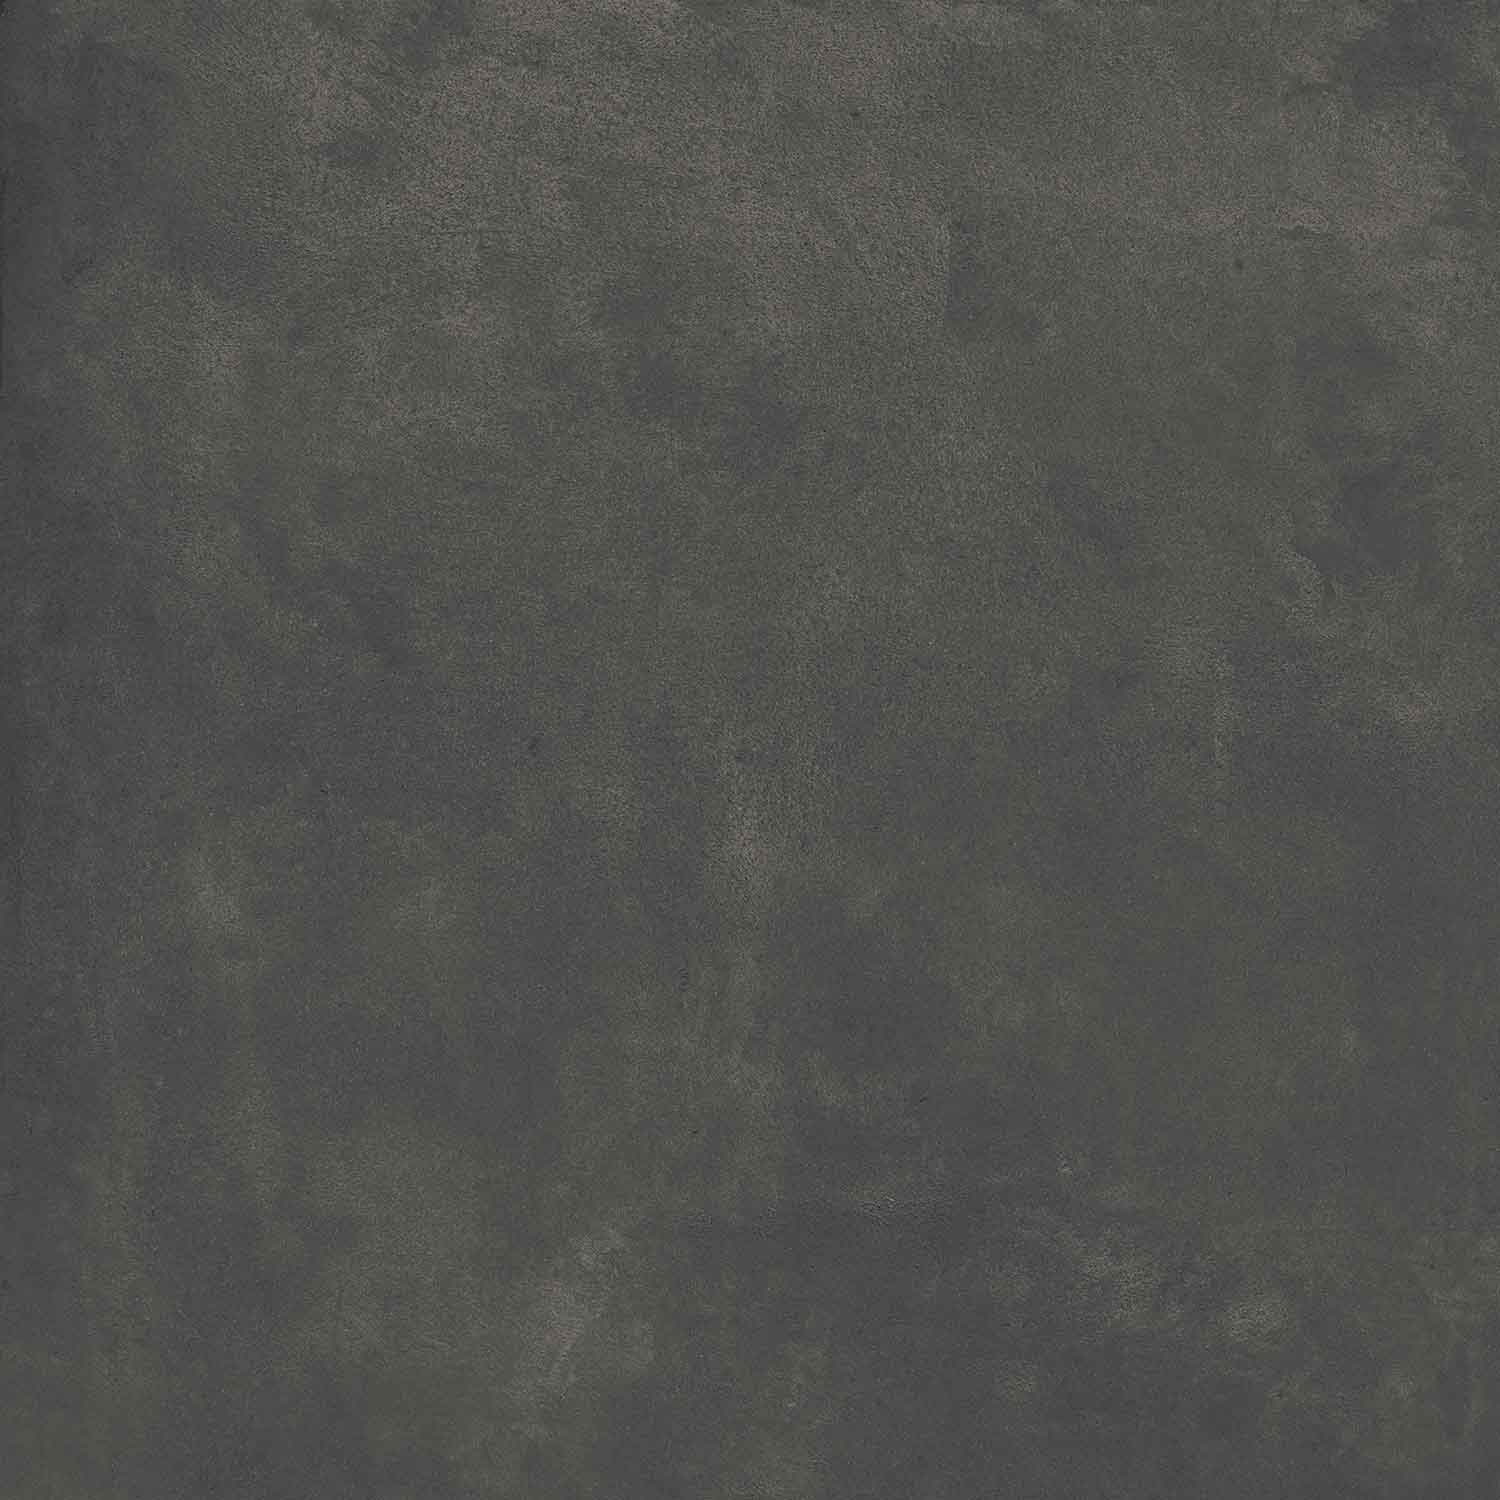 Buildtech 2.0 CE Coal Slate-hammered 10mm 60 x 60